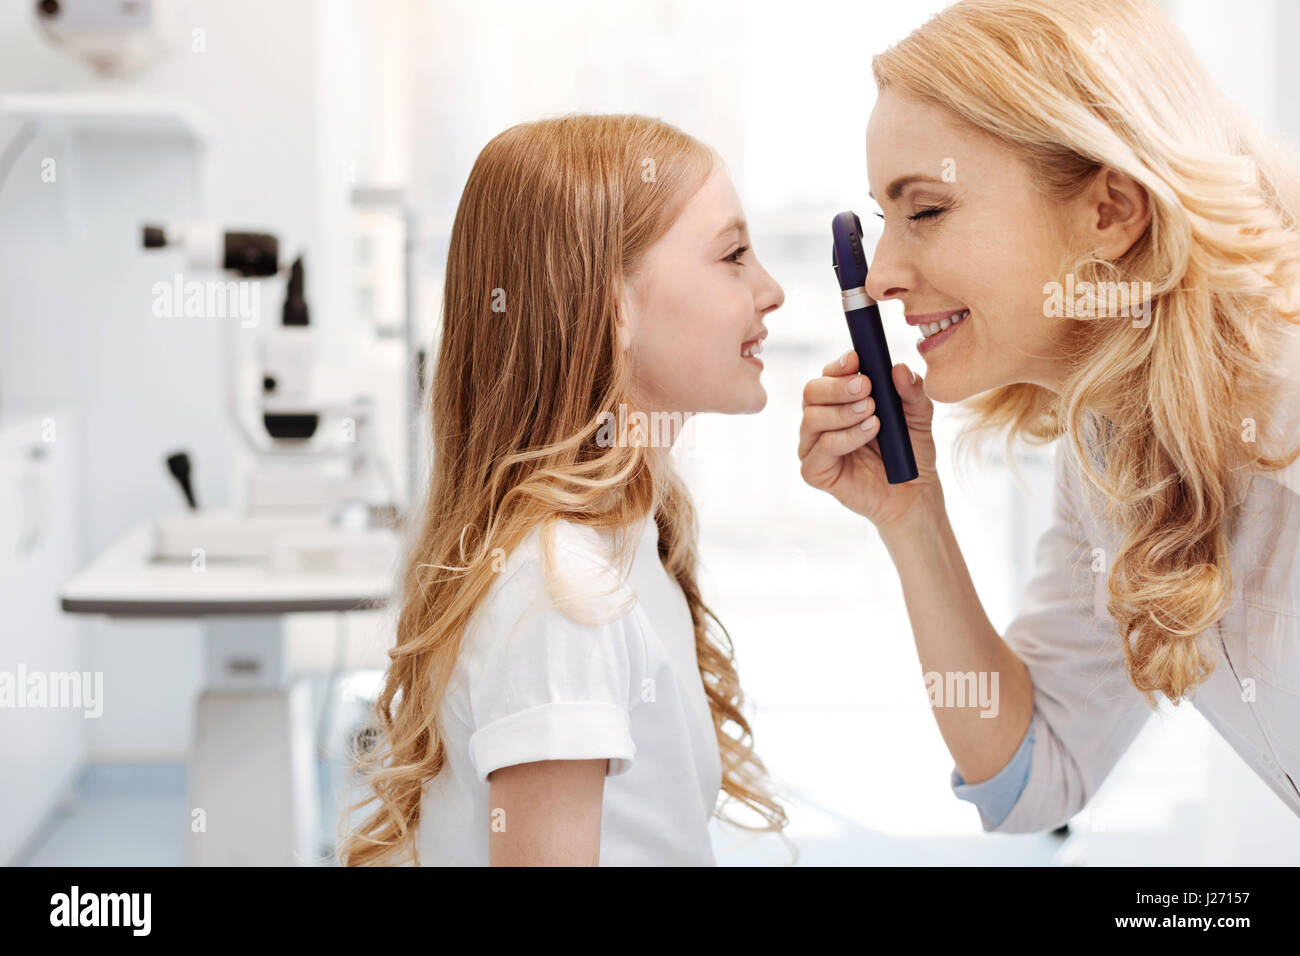 Prominent eye specialist using ophthalmoscope - Stock Image